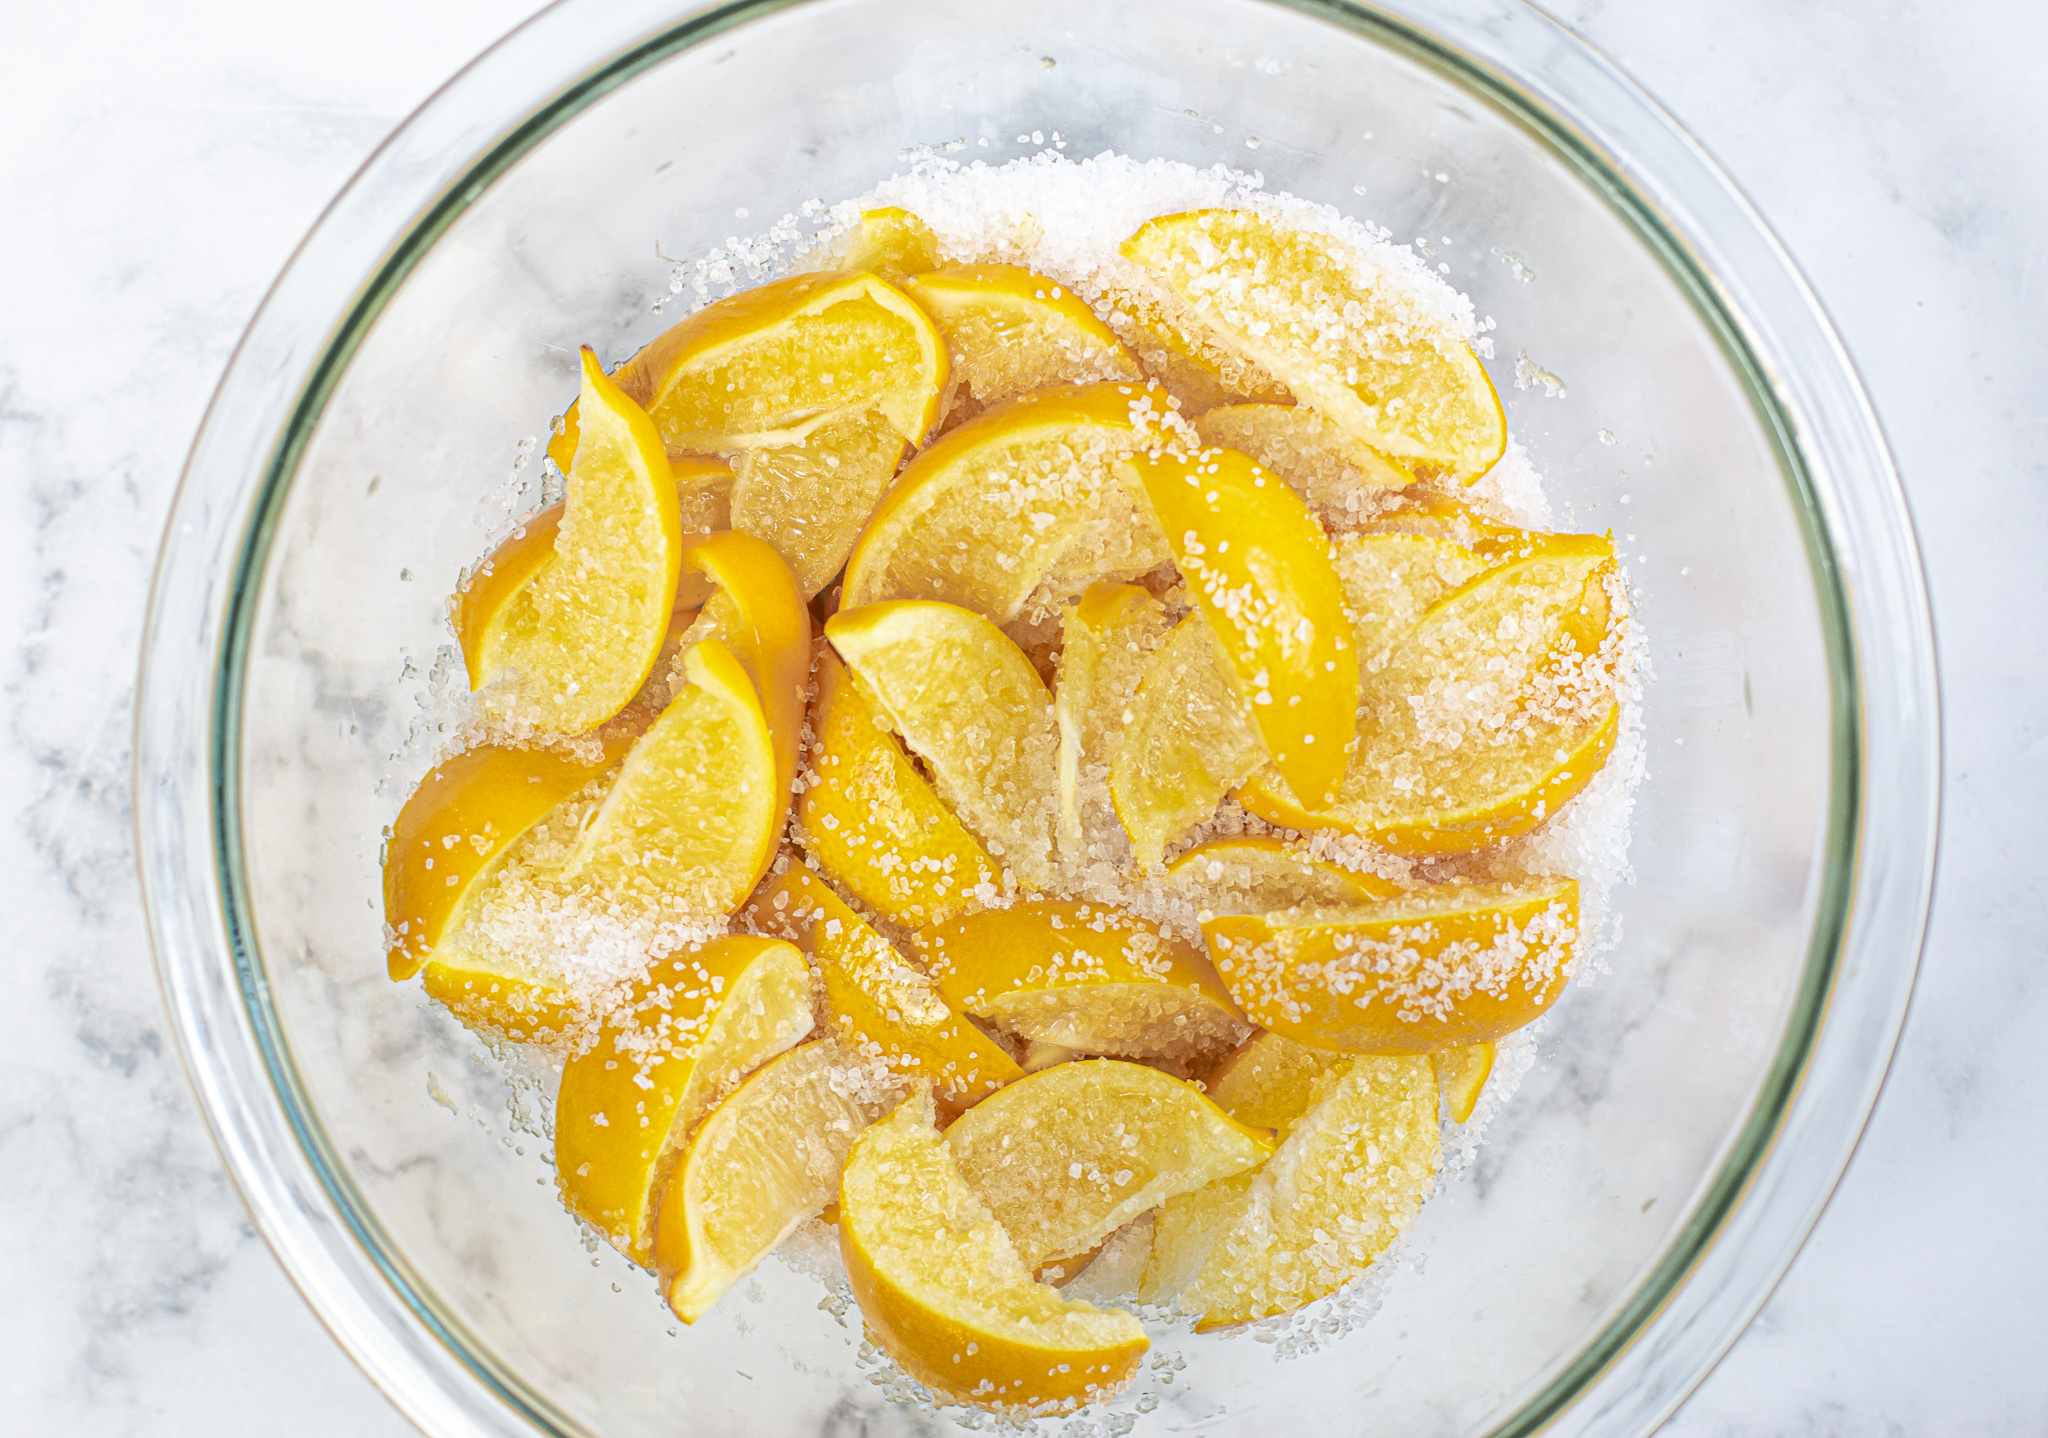 Kosher coarse salt is rubbed into the lemon wedges